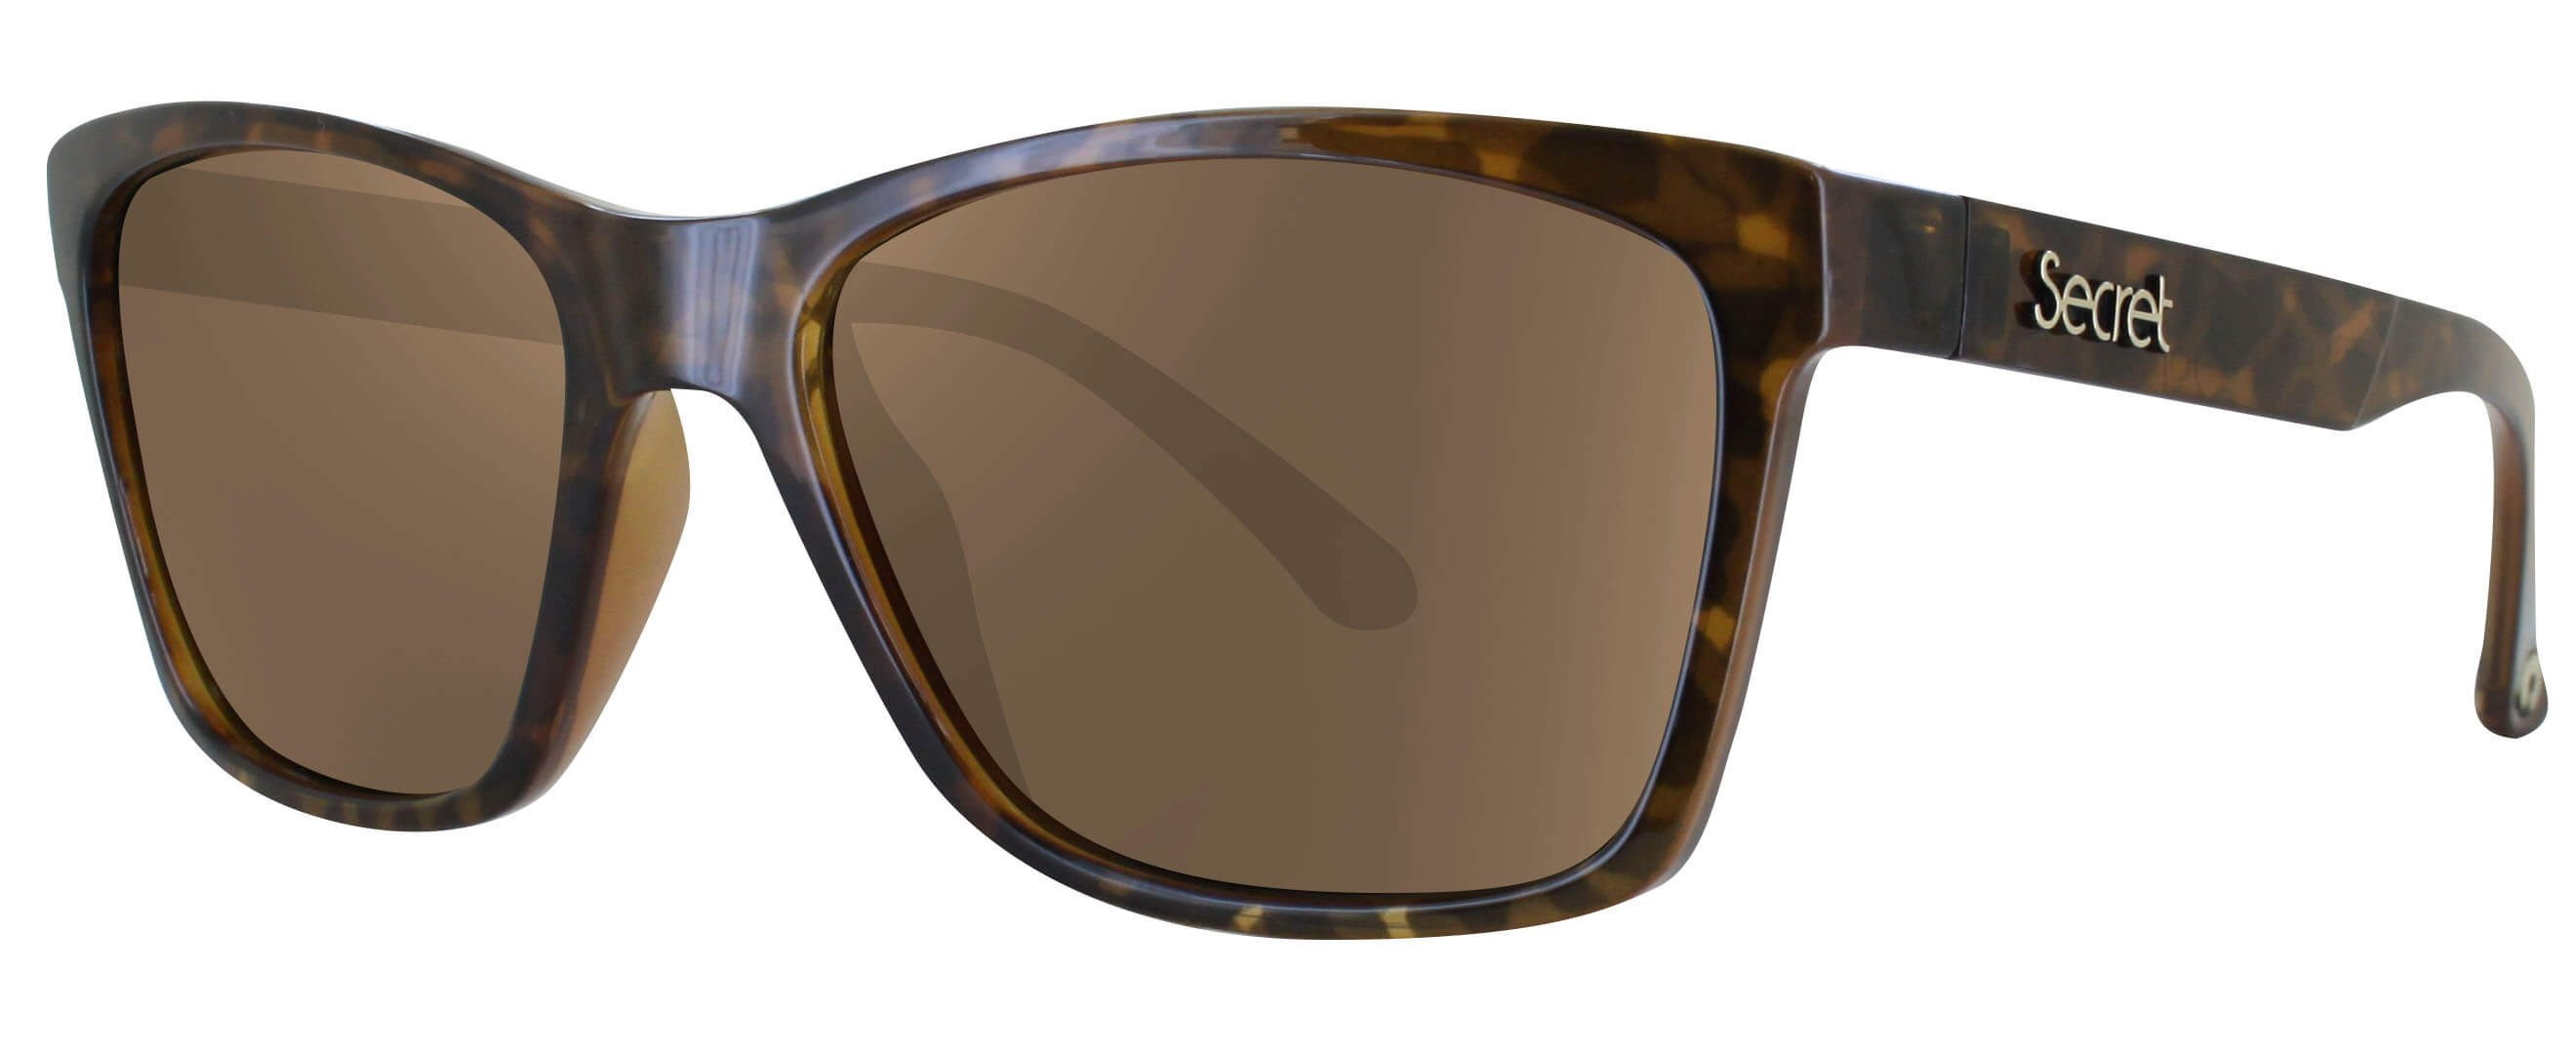 ÓC SECRET SOPHIA HAVANA TURTLE / POLARIZED BROWN